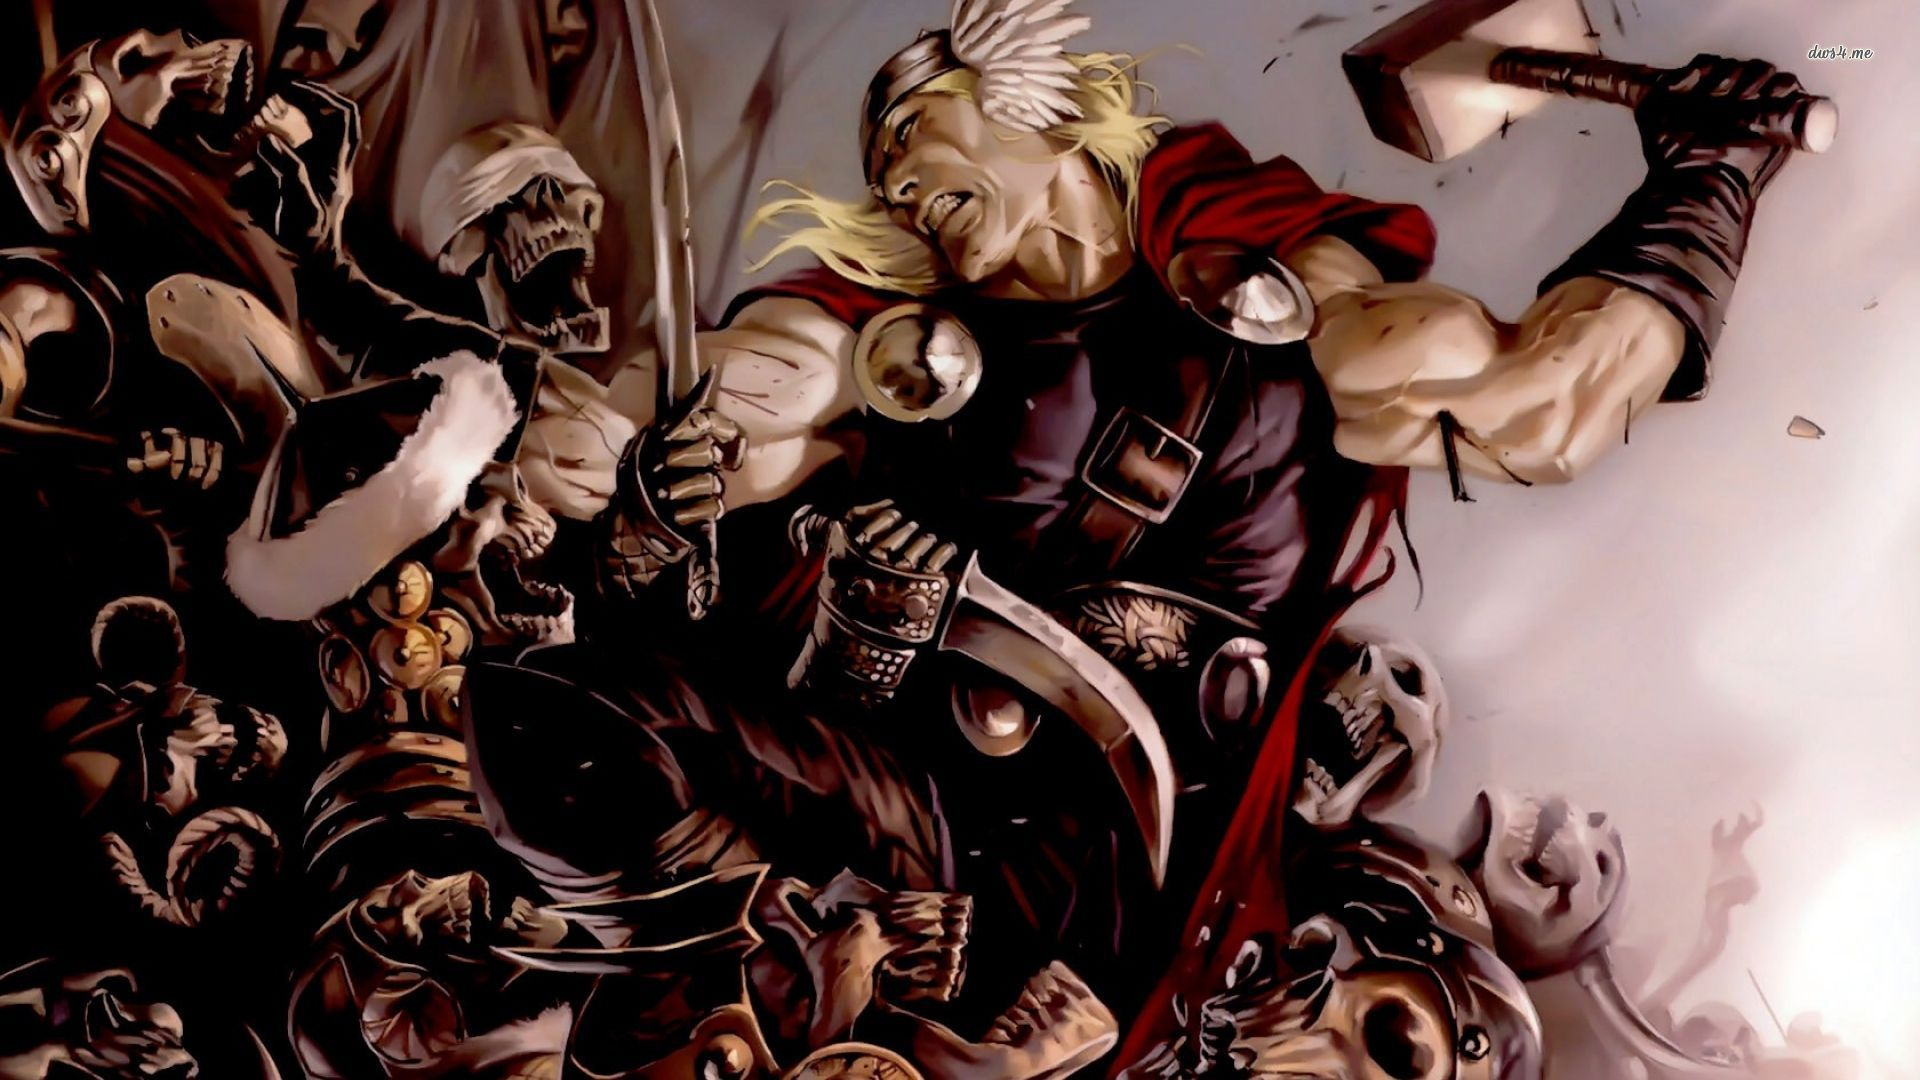 11 Best Hd Wallpapers From The Marvel Universe That You: Thor Comic Wallpaper